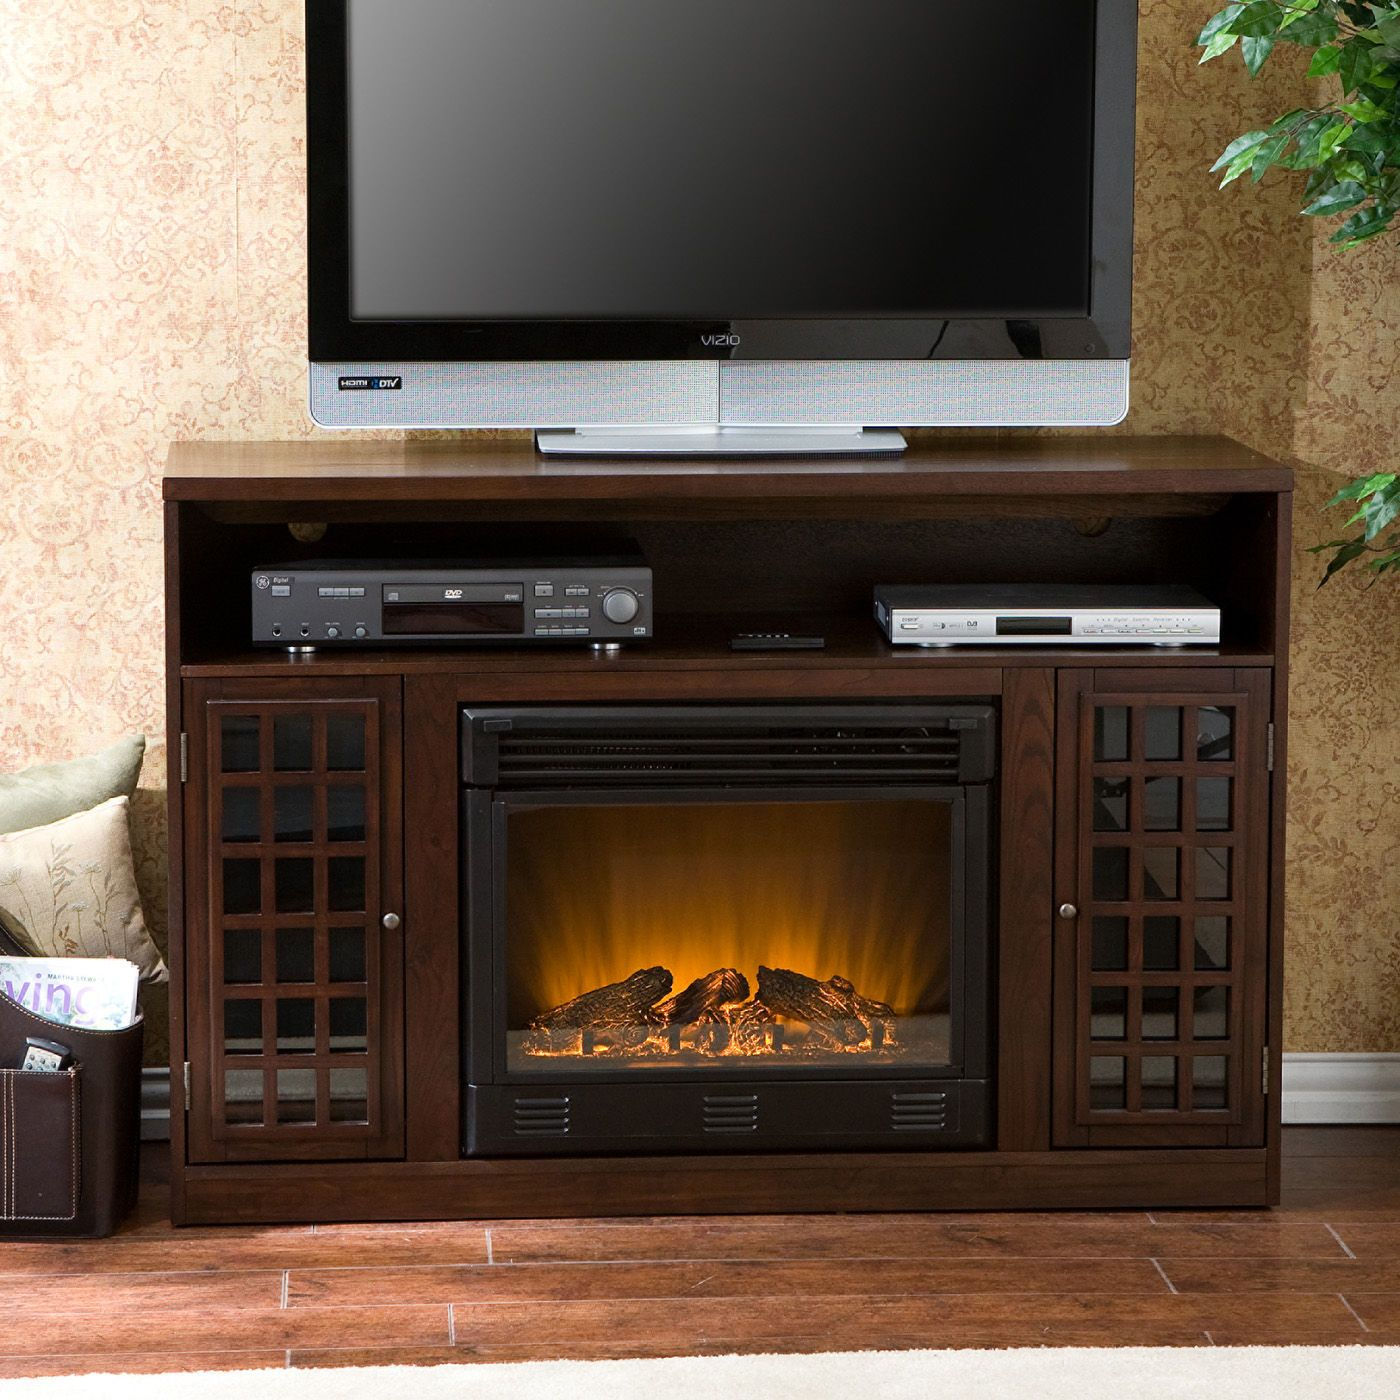 Build our TV stand around the free standing stove